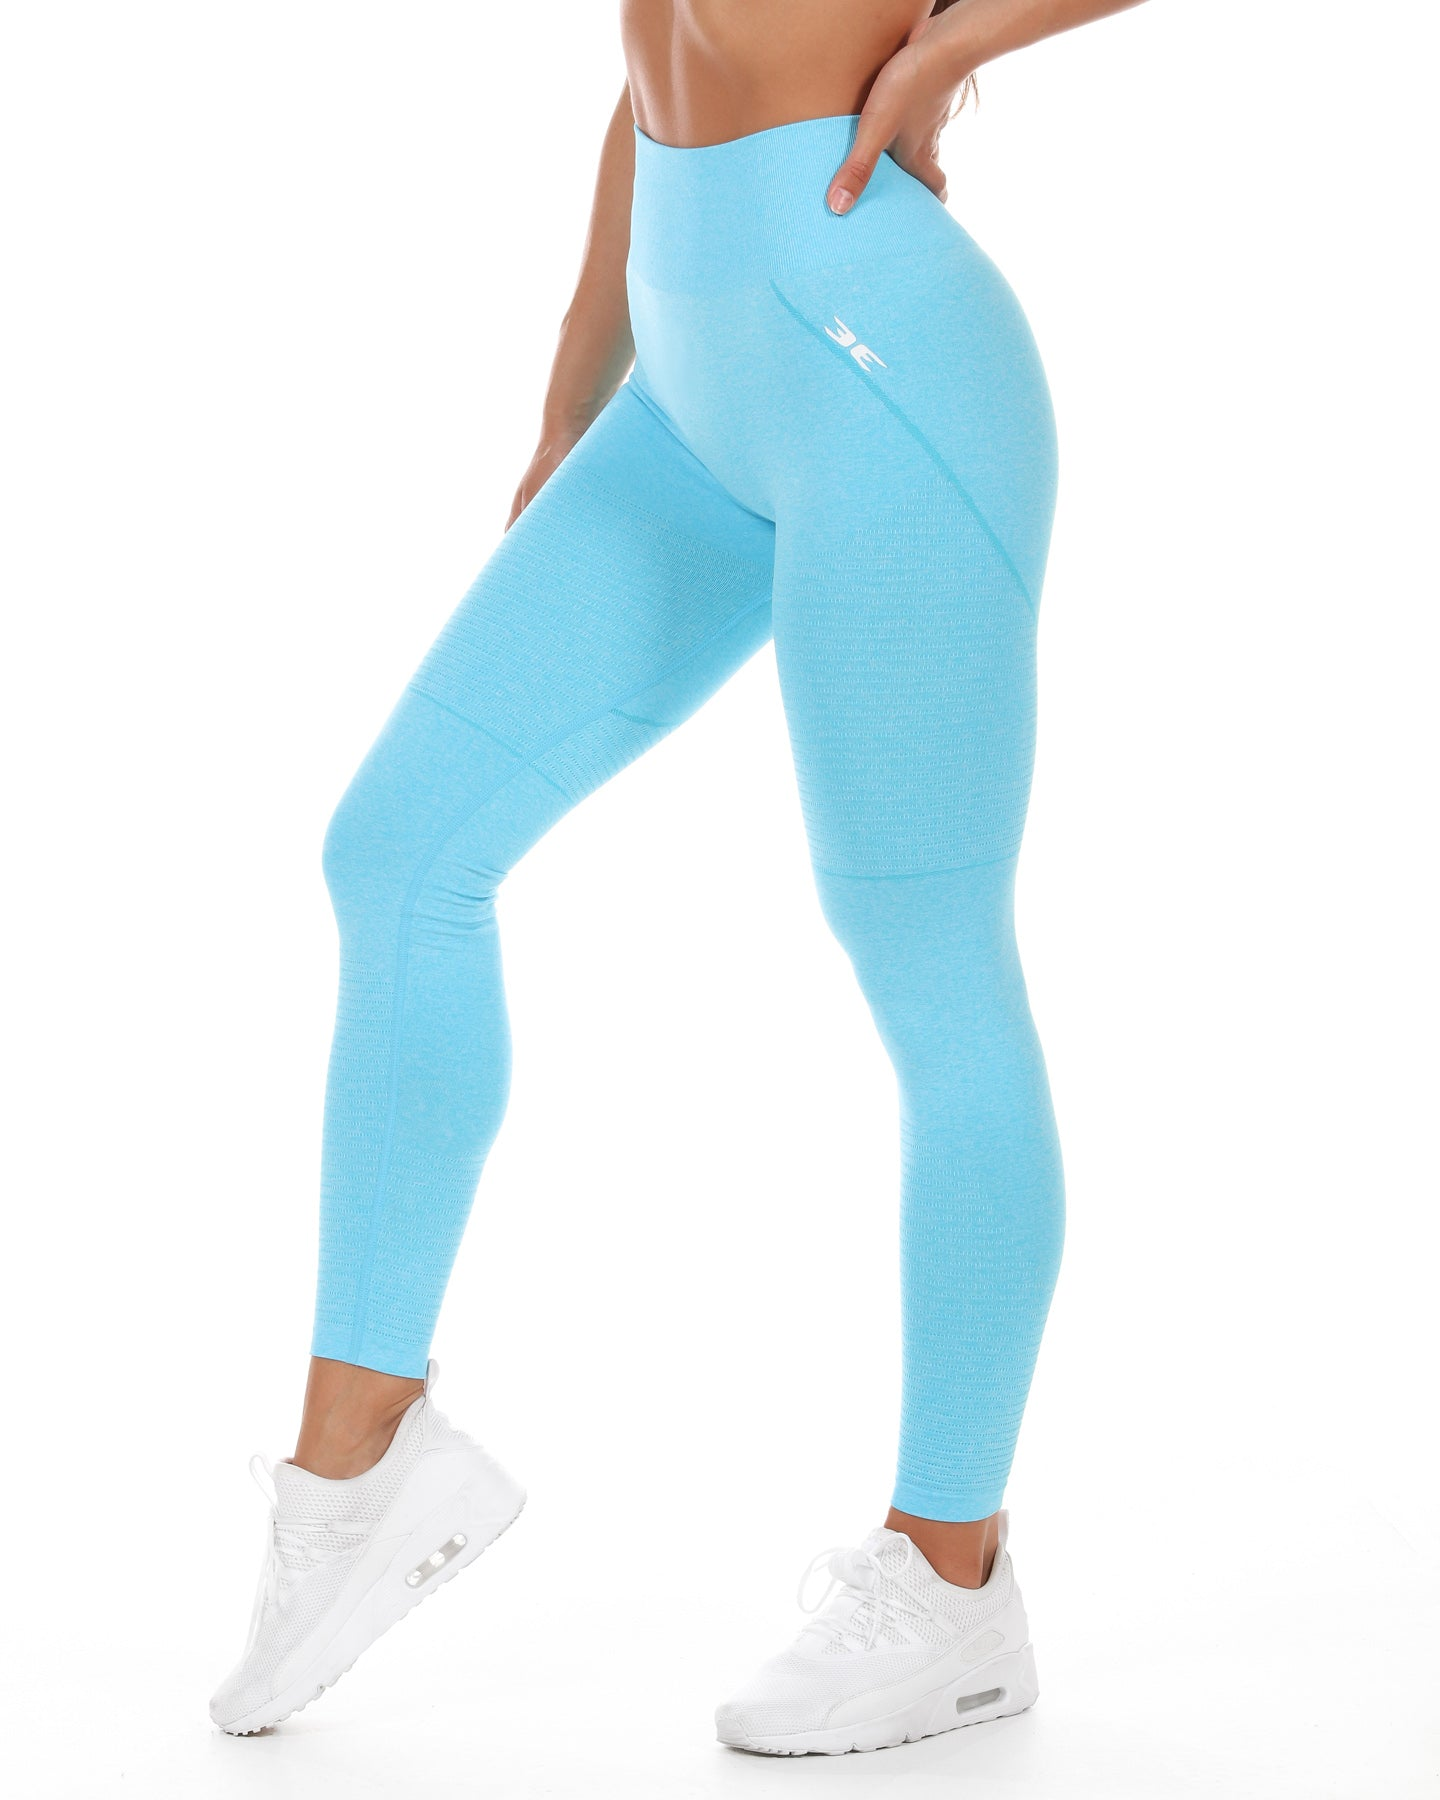 Elite Seamless Leggings - Tropical Blue